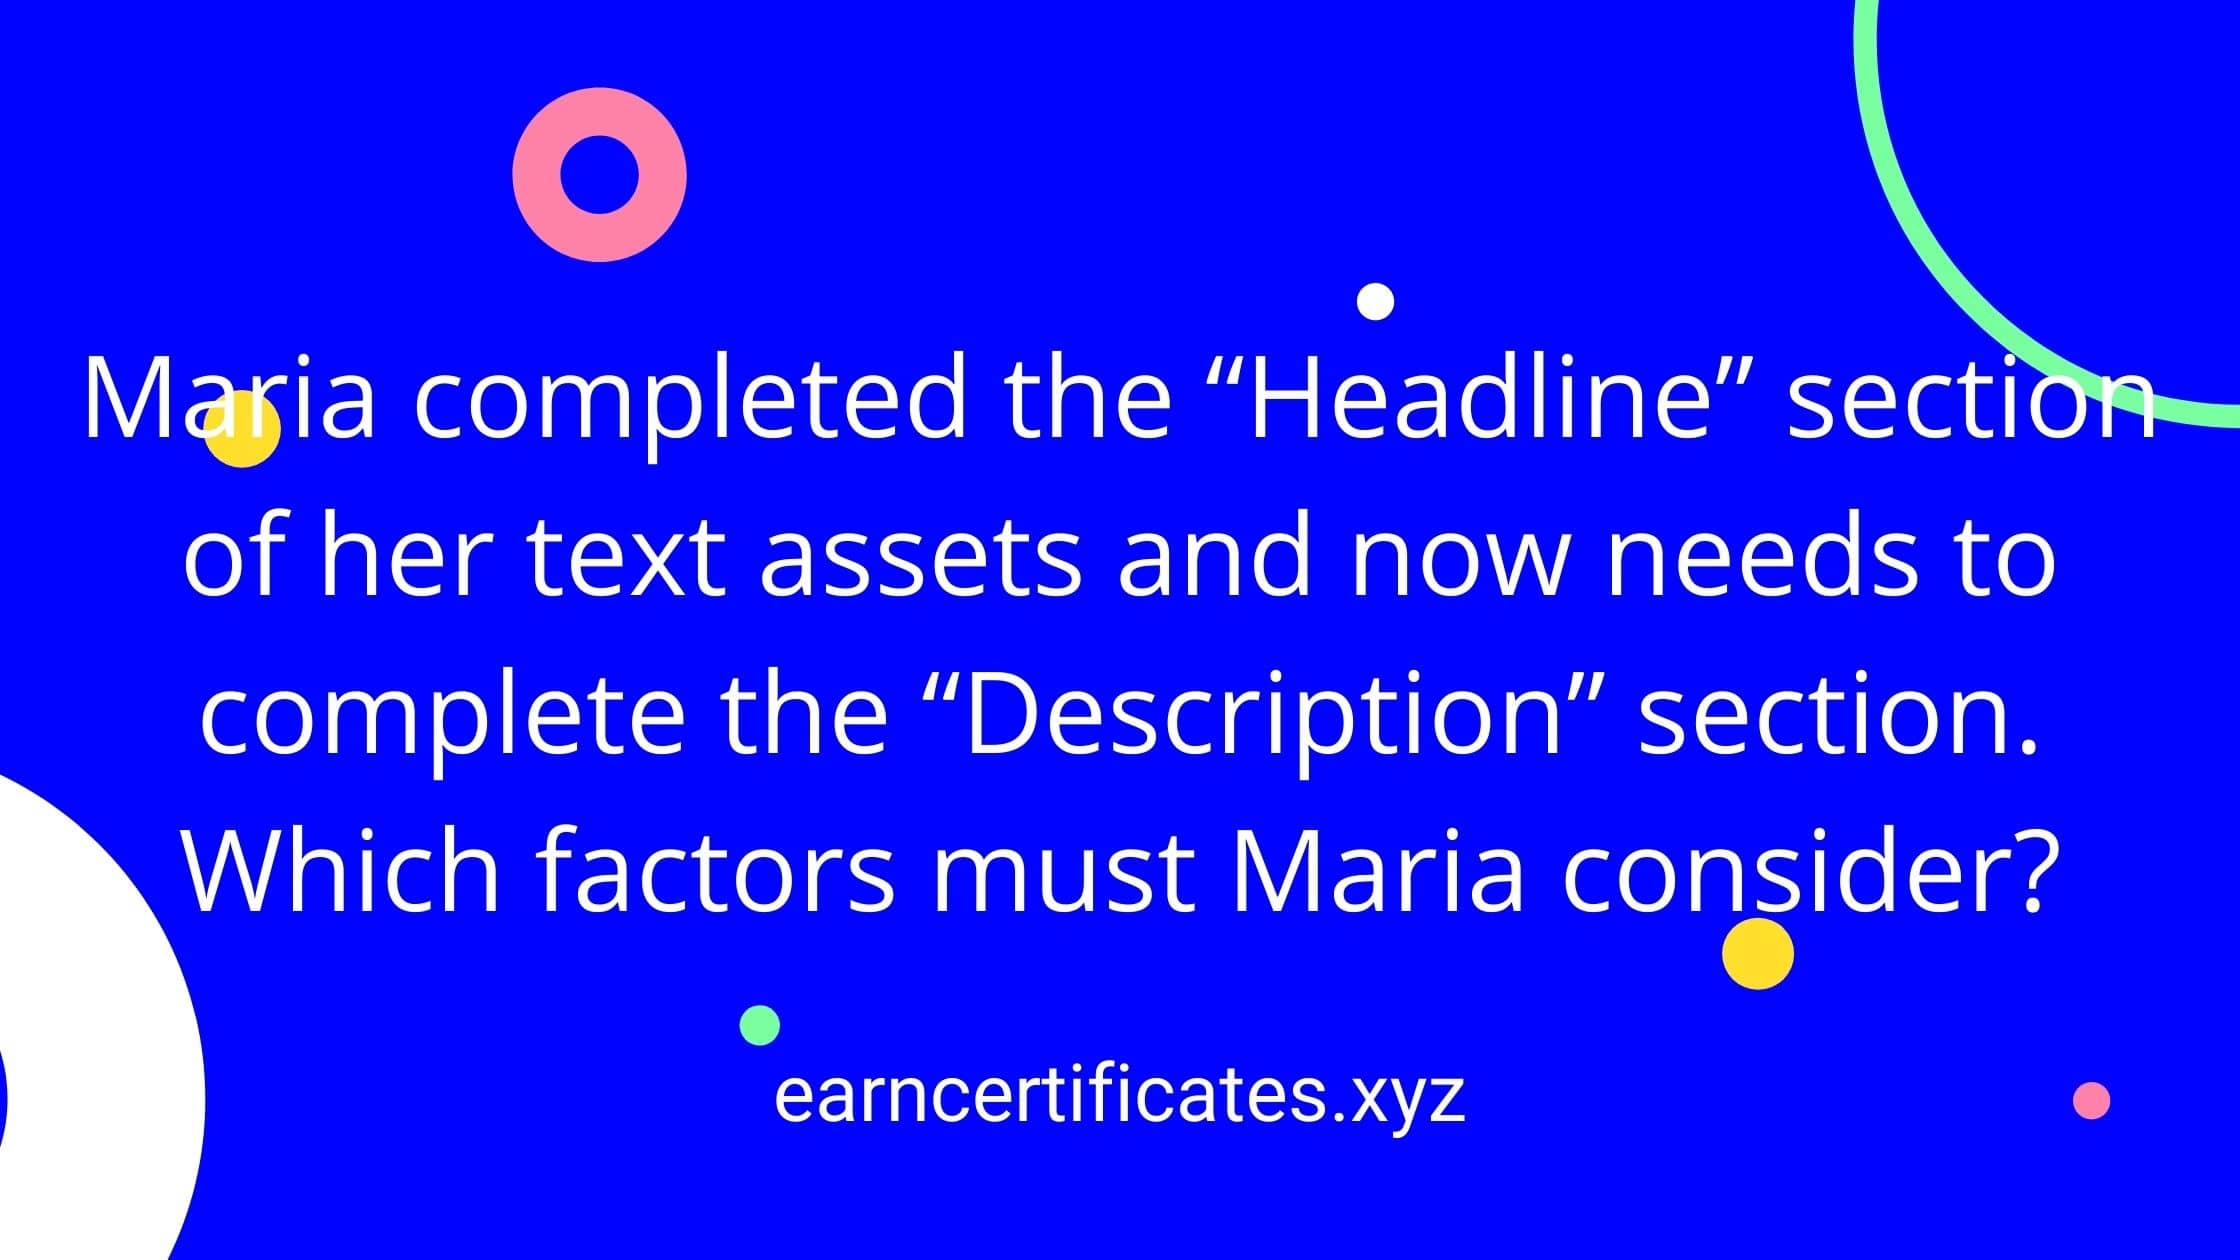 """Maria completed the """"Headline"""" section of her text assets and now needs to complete the """"Description"""" section. Which factors must Maria consider?"""